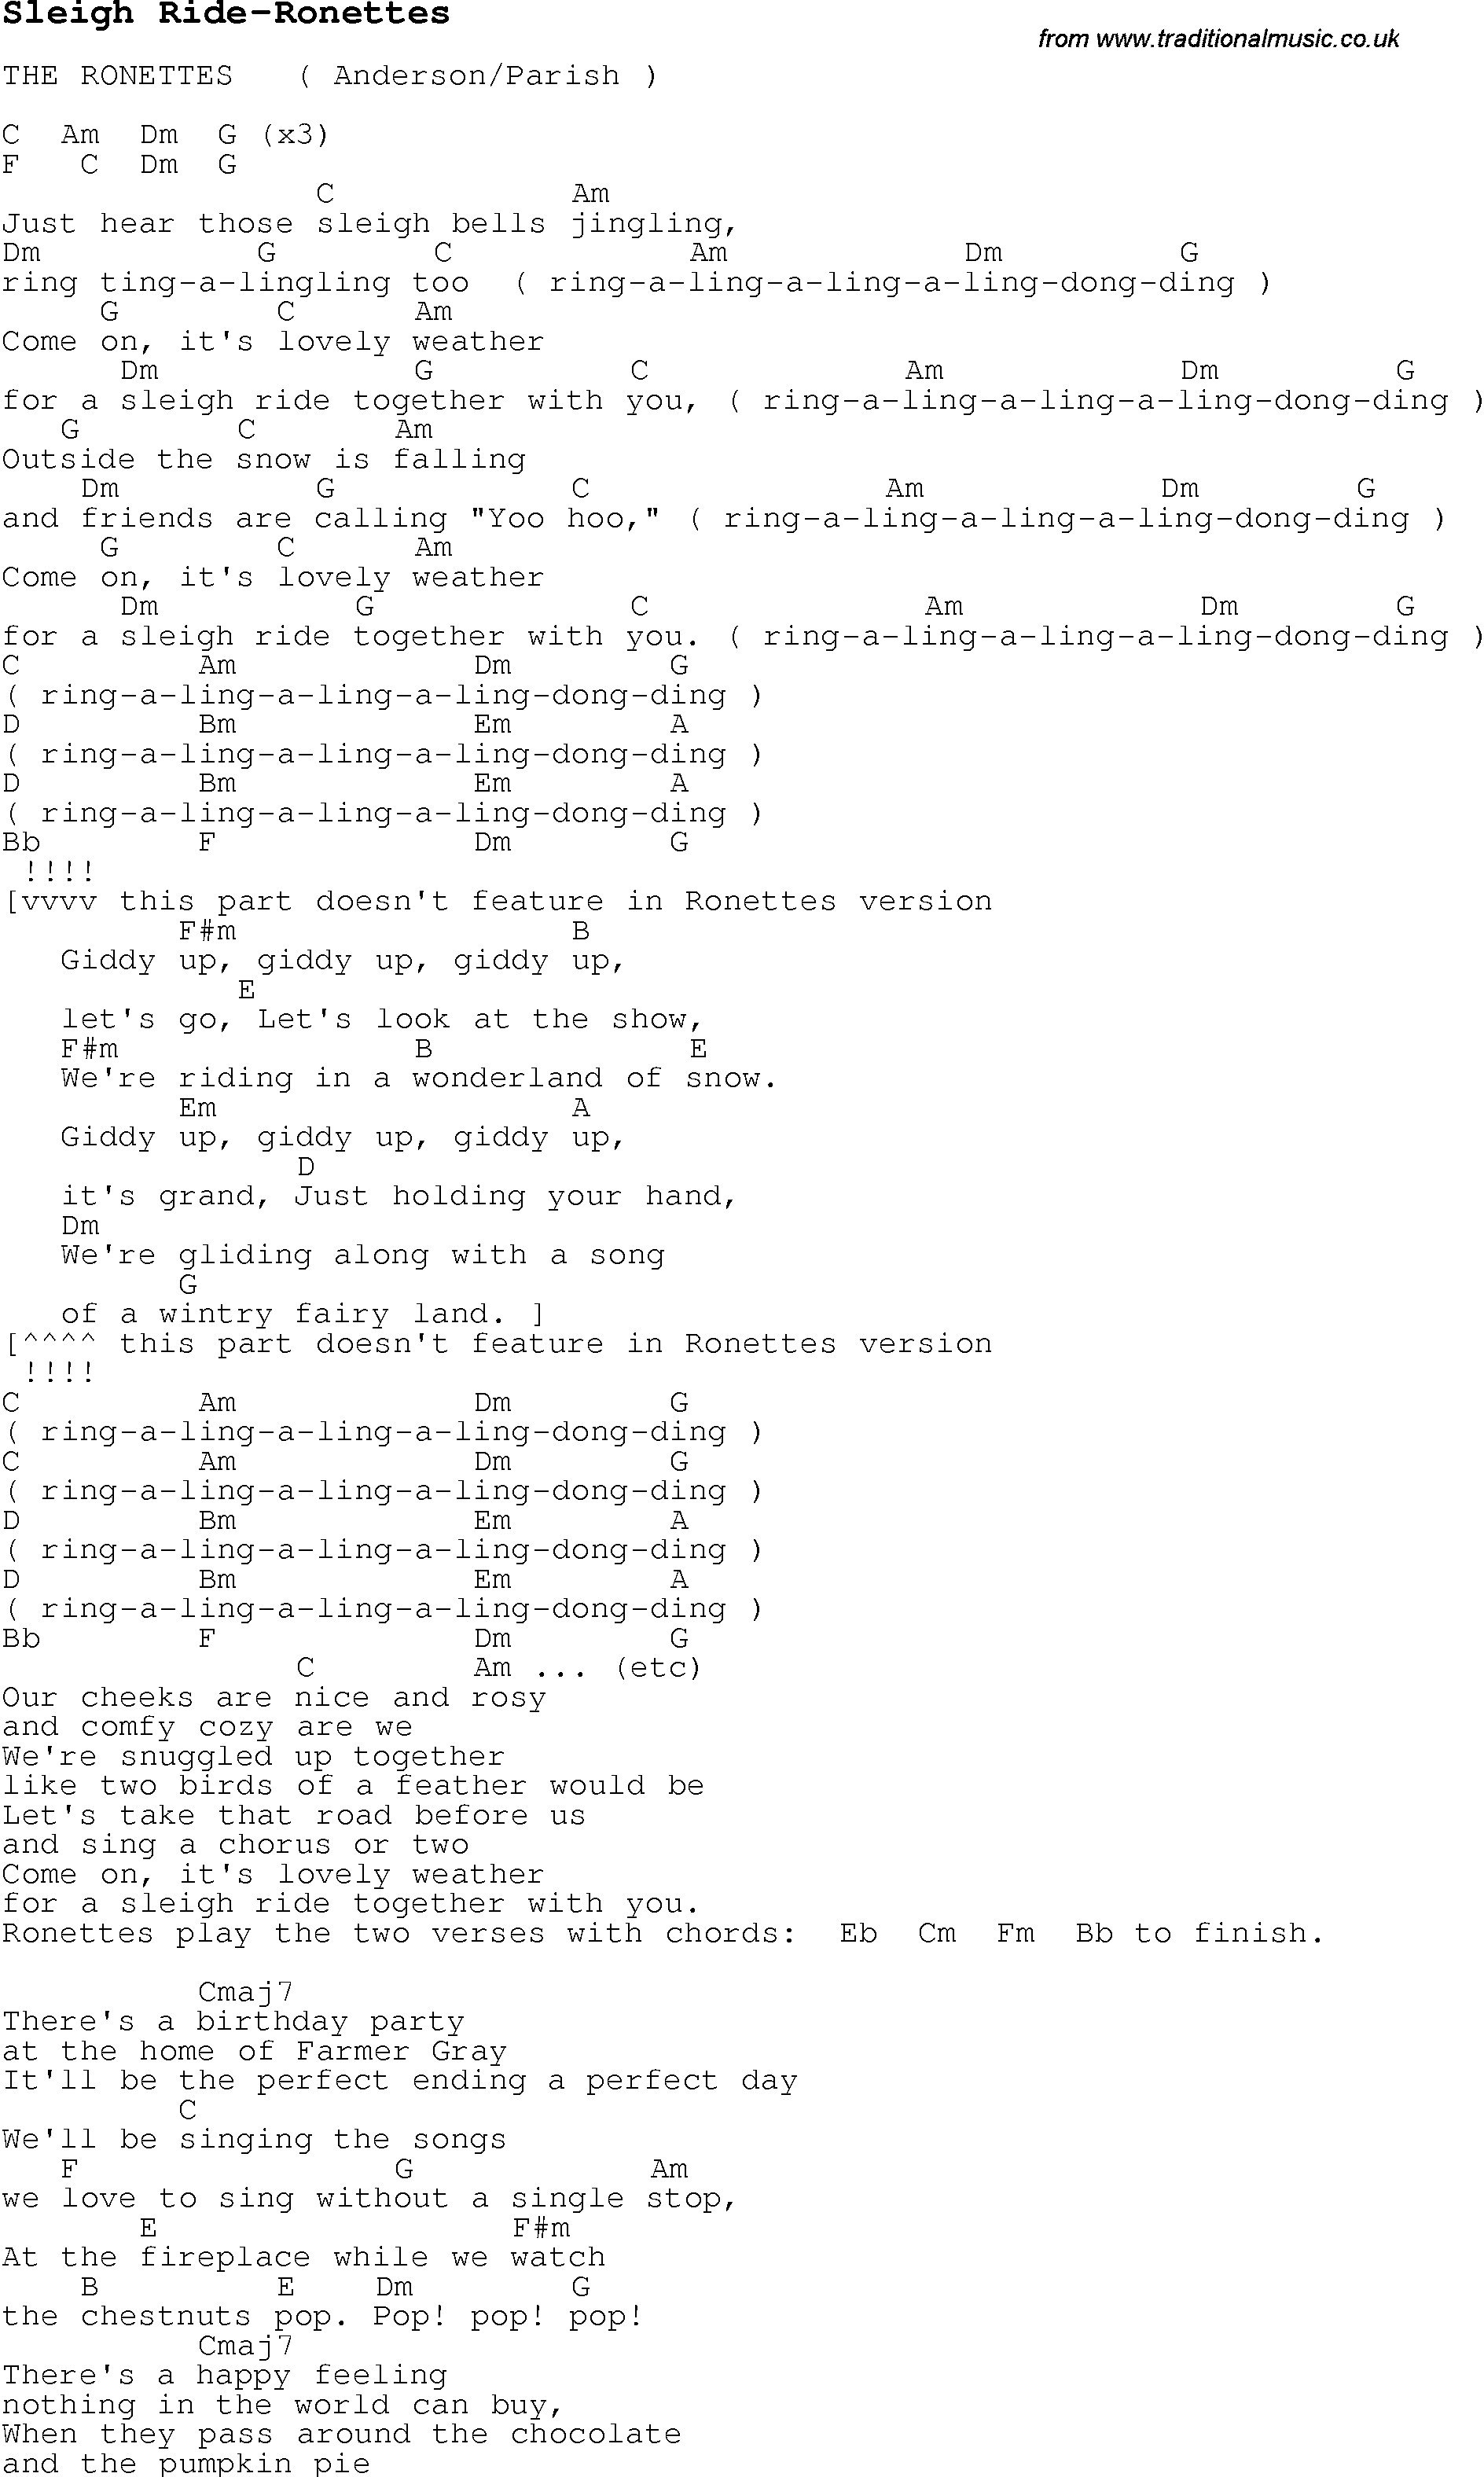 Christmas Carol/Song lyrics with chords for Sleigh Ride-Ronettes